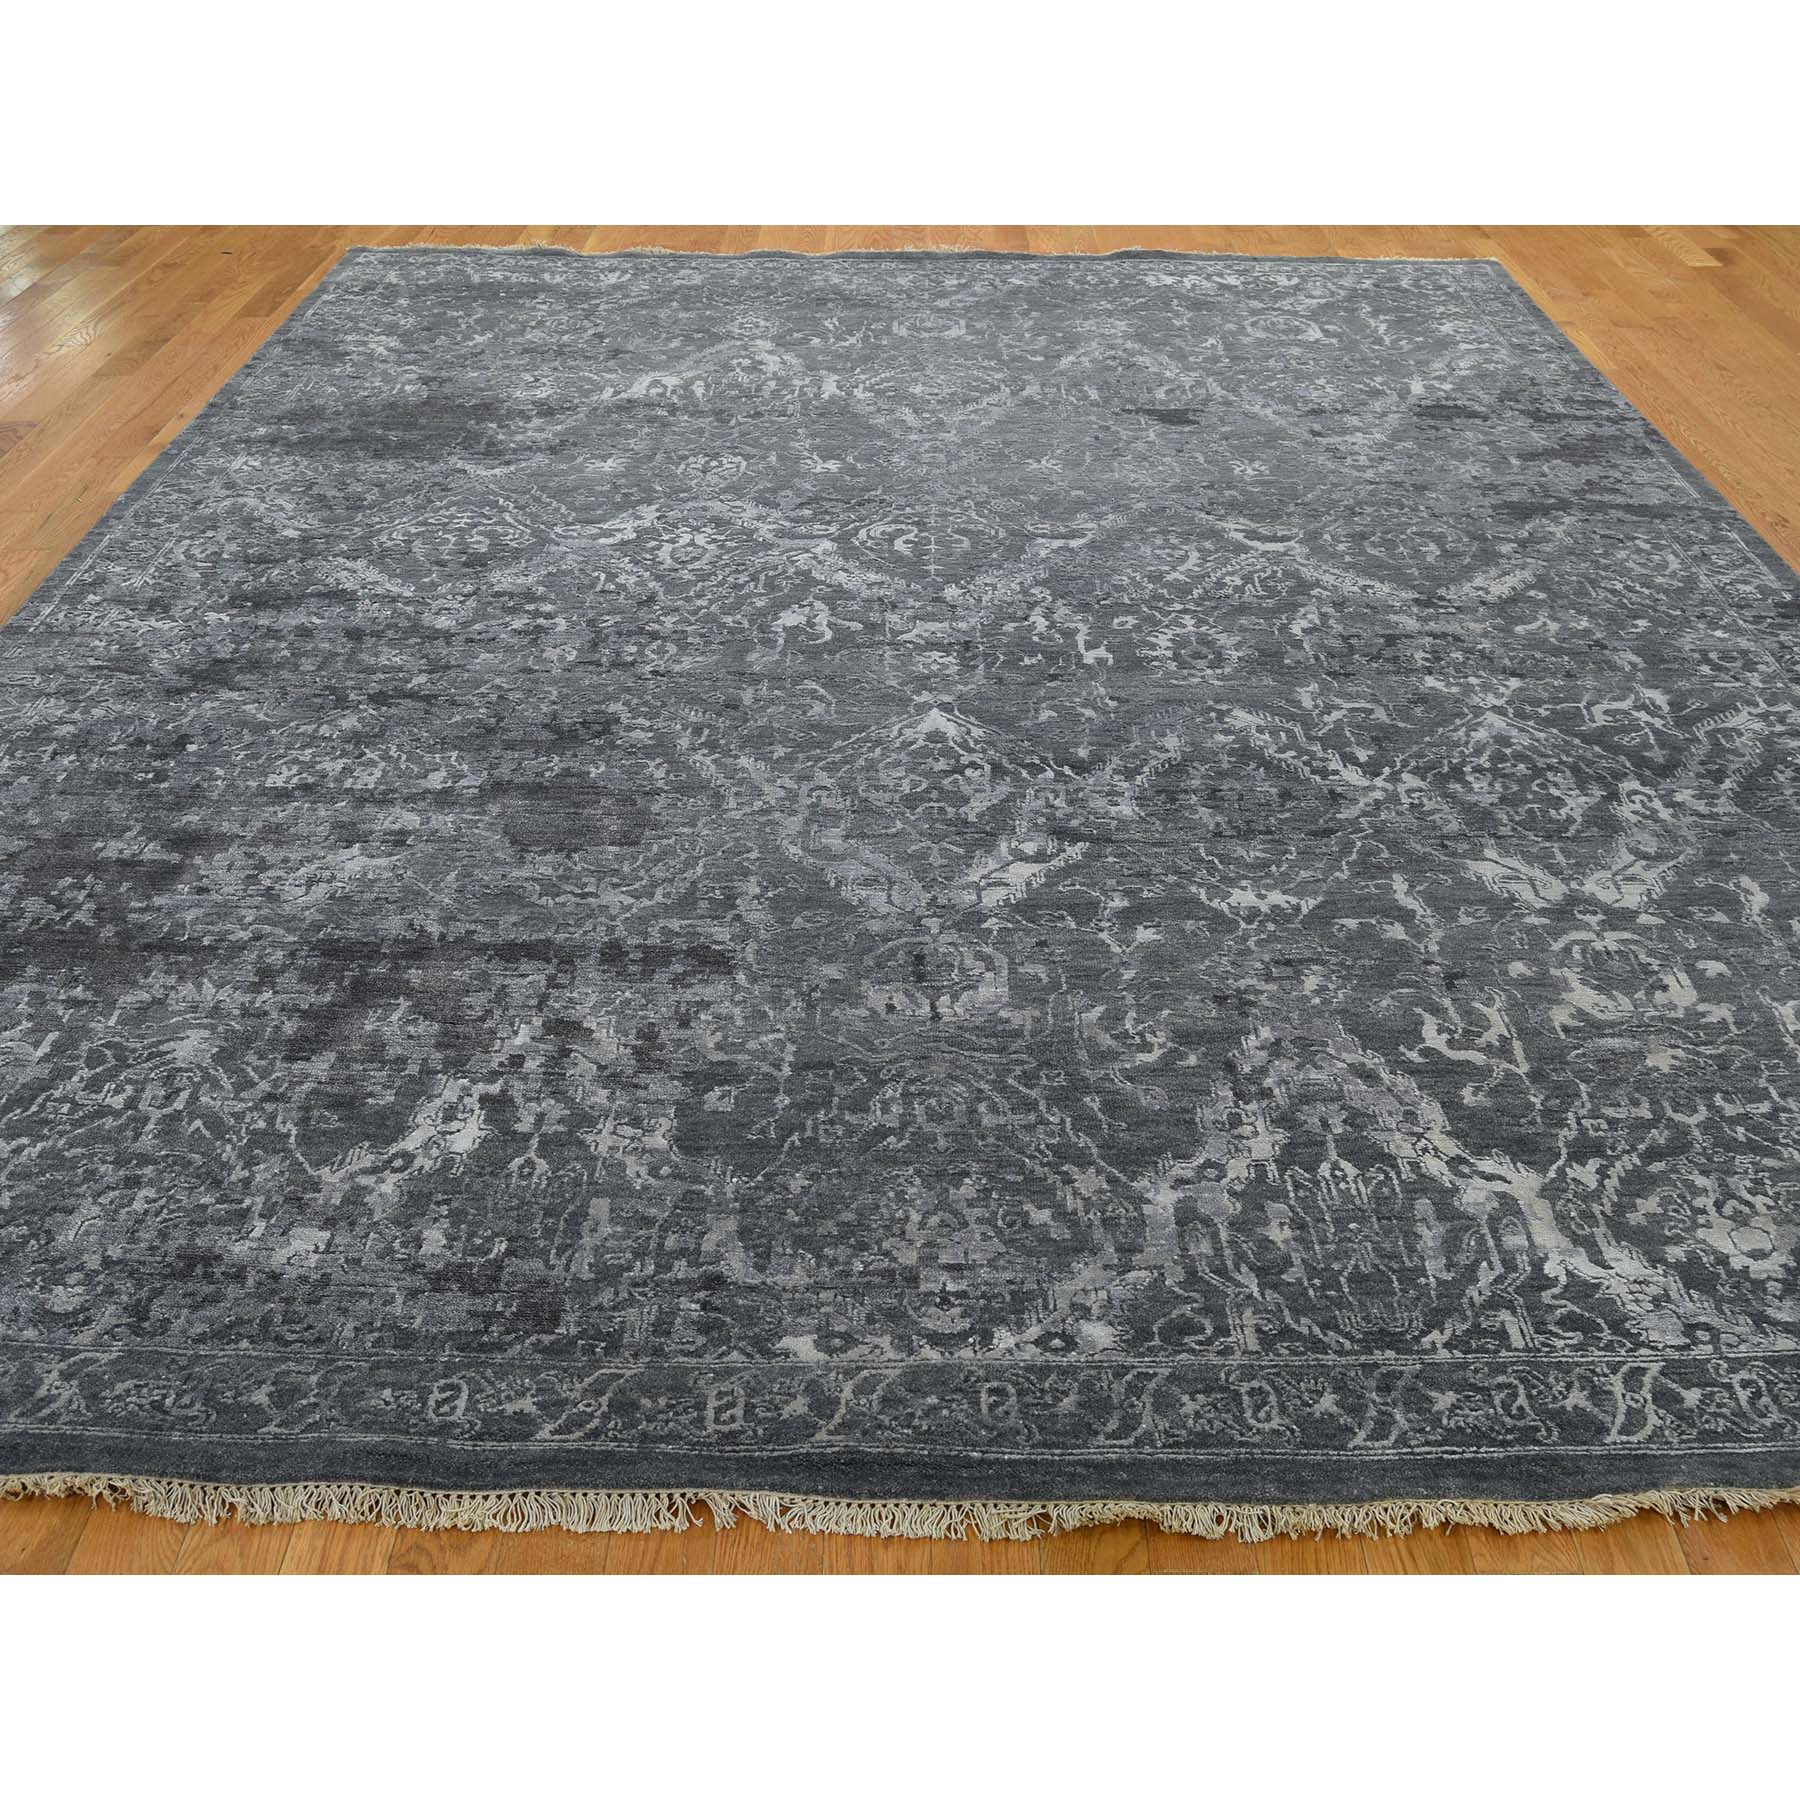 9-x11-9  Broken Persian Design Wool And Silk Hand-Knotted Oriental Rug